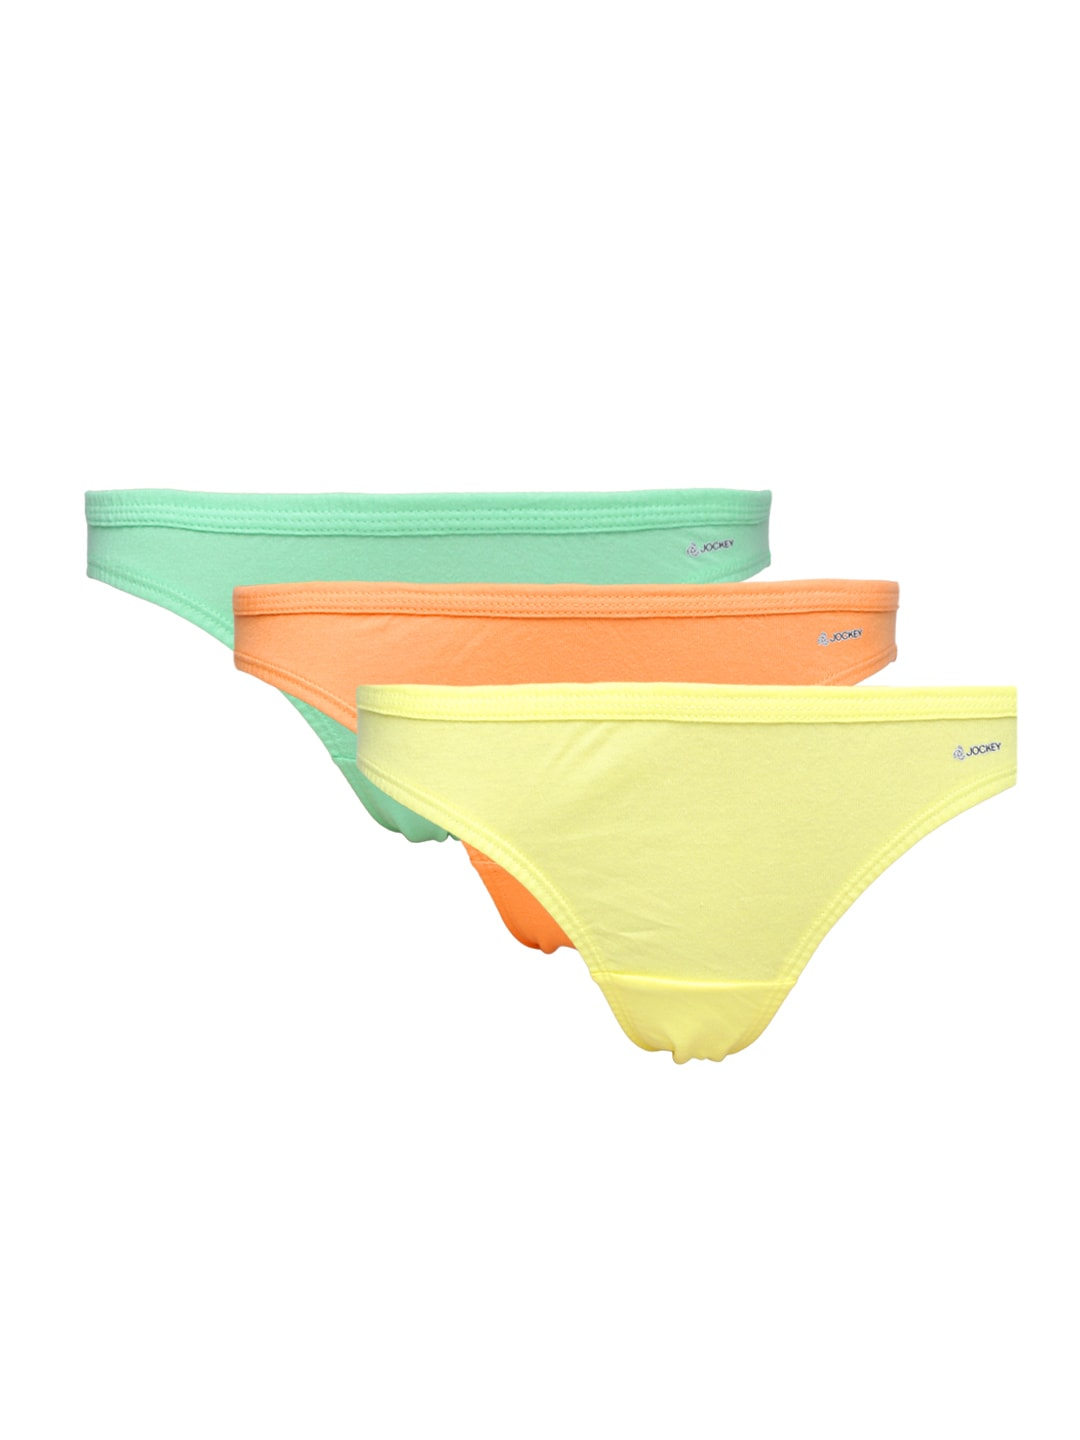 Jockey Women Multicoloured Set of 3 Bikini Briefs 1411-0310 image